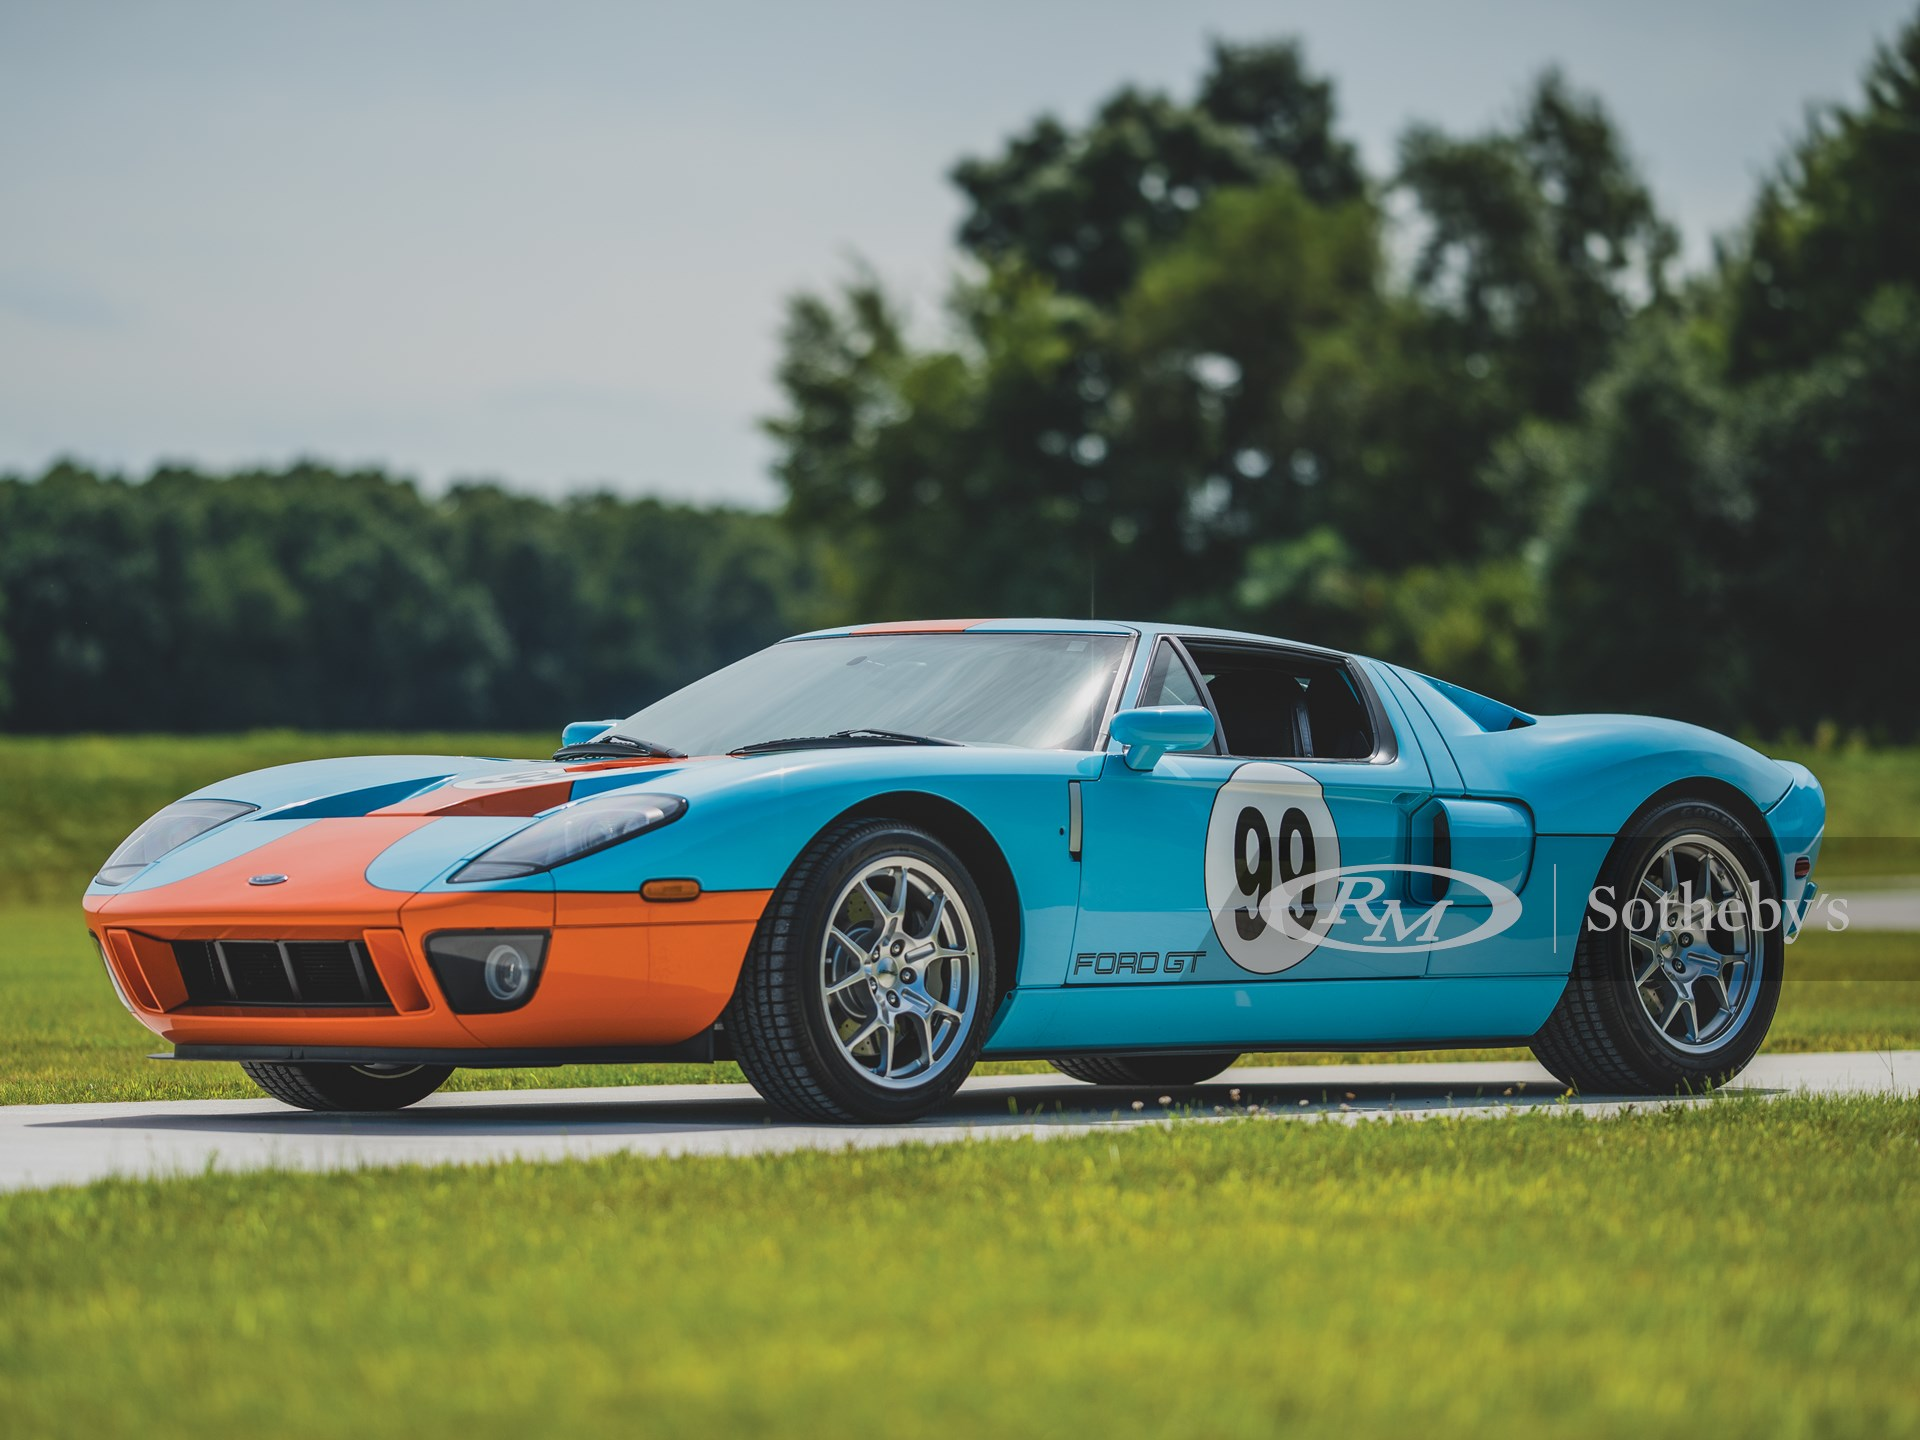 2006 Ford GT Heritage Darin Schnabel - Cortesia de RM Sotheby's